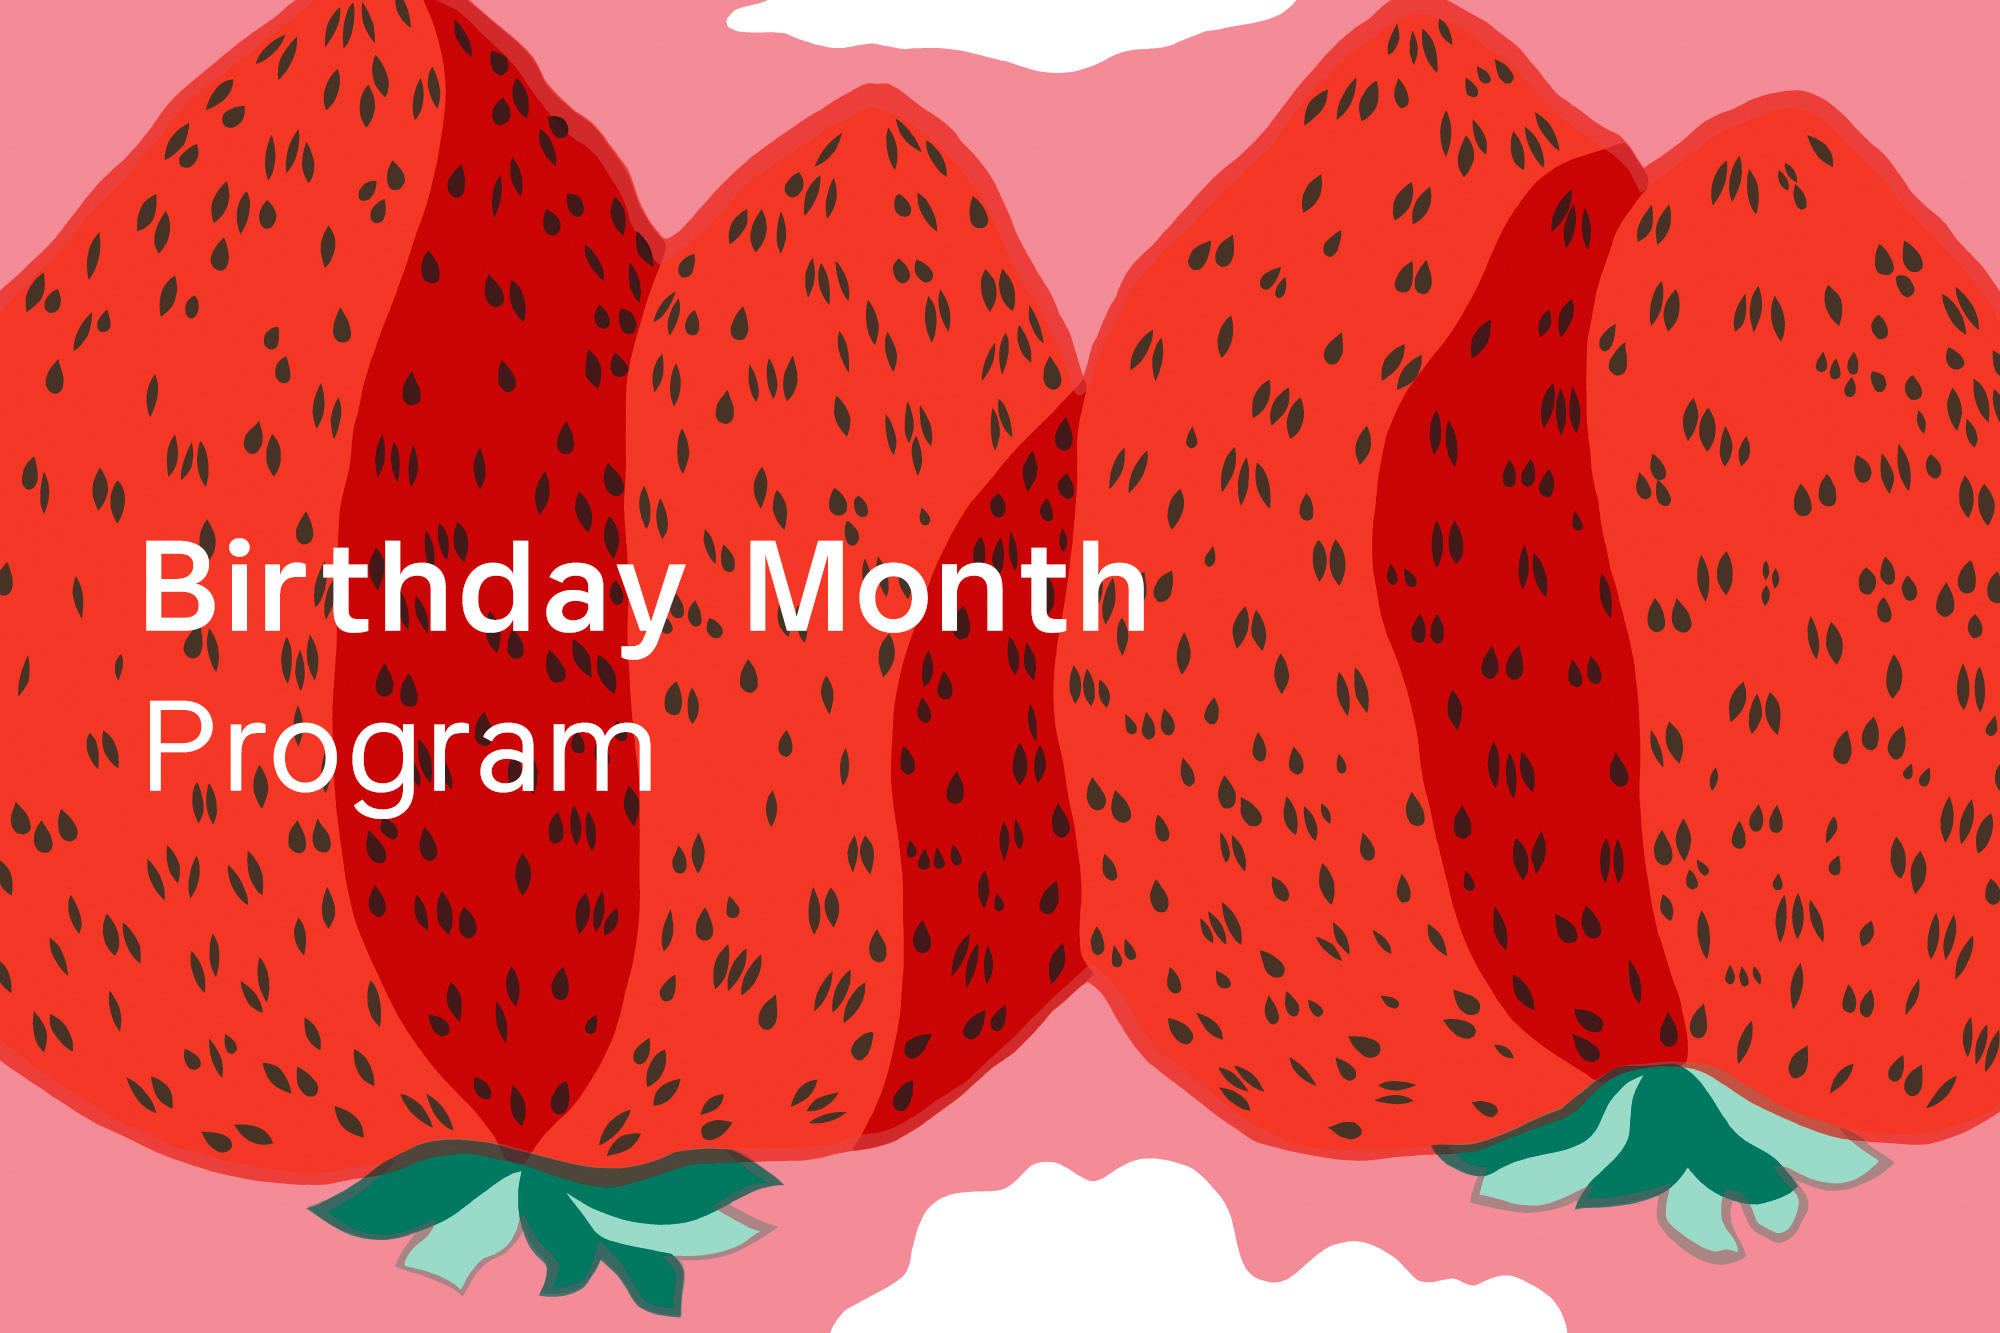 Birthday Month Program